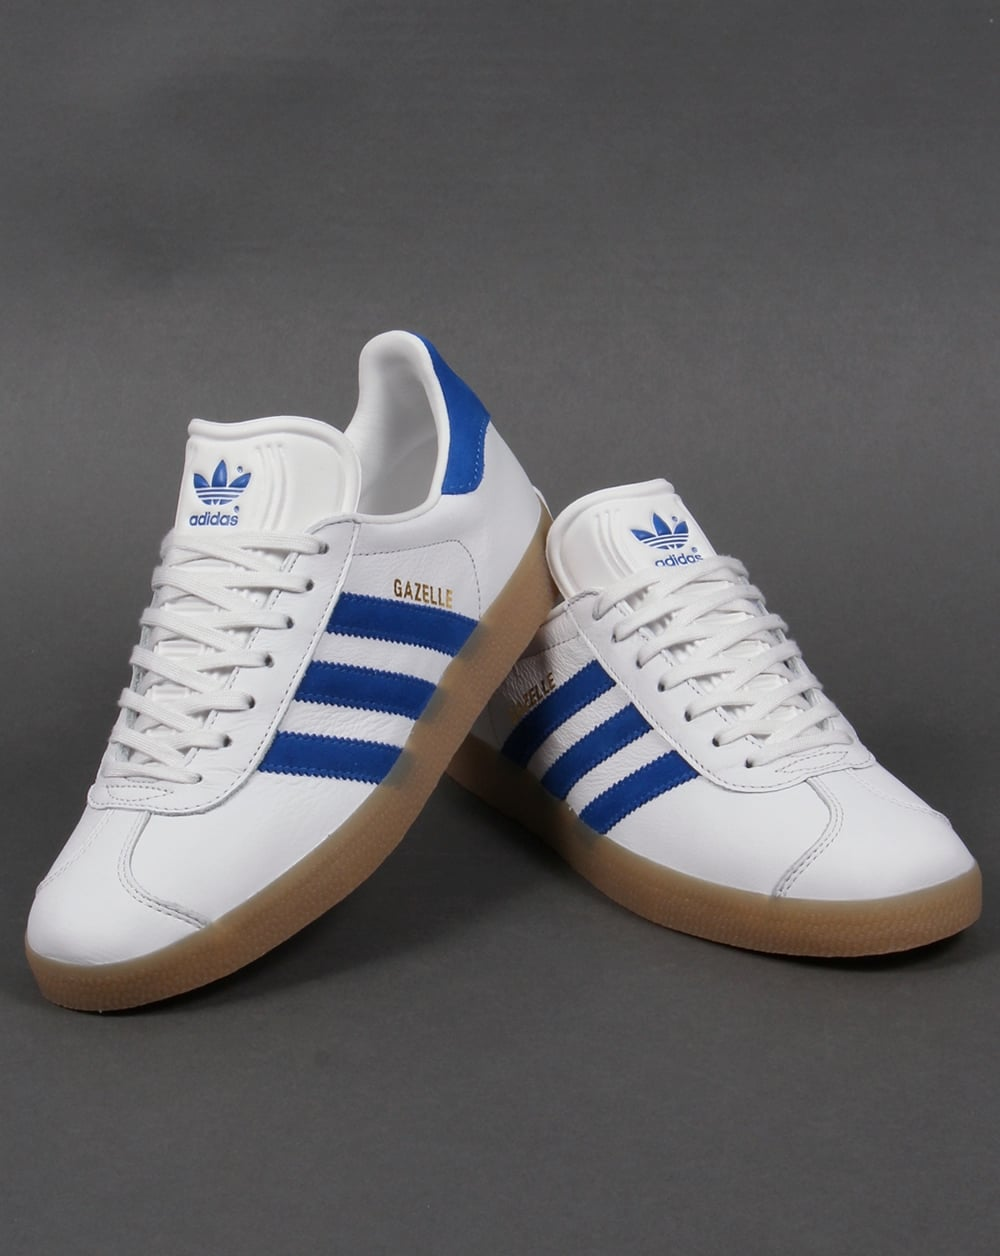 179c6190f582b3 Adidas Gazelle Leather Trainers White Royal Gum